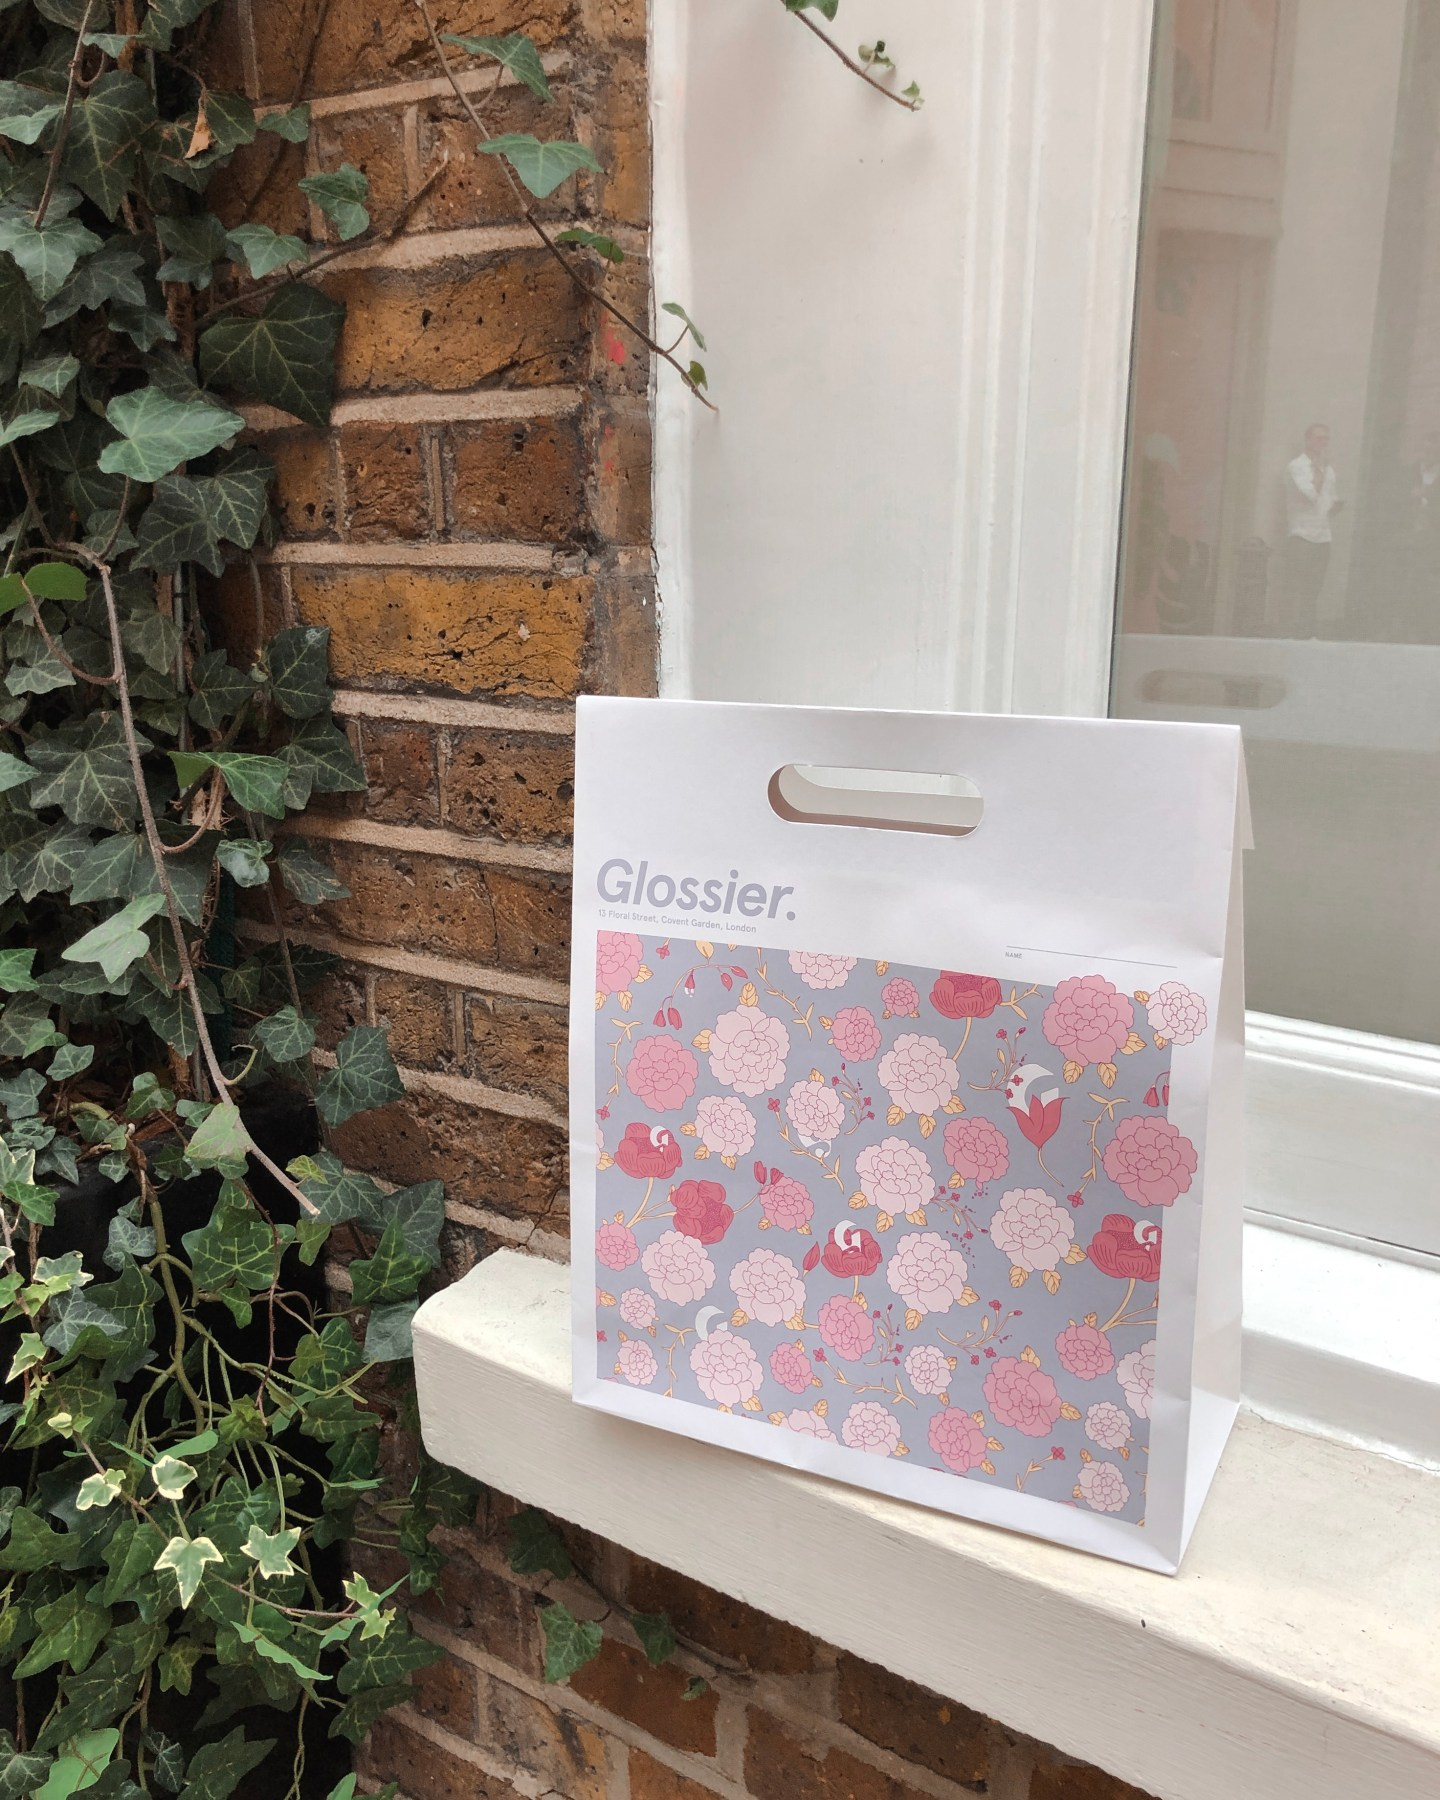 Glossier pop-up store London